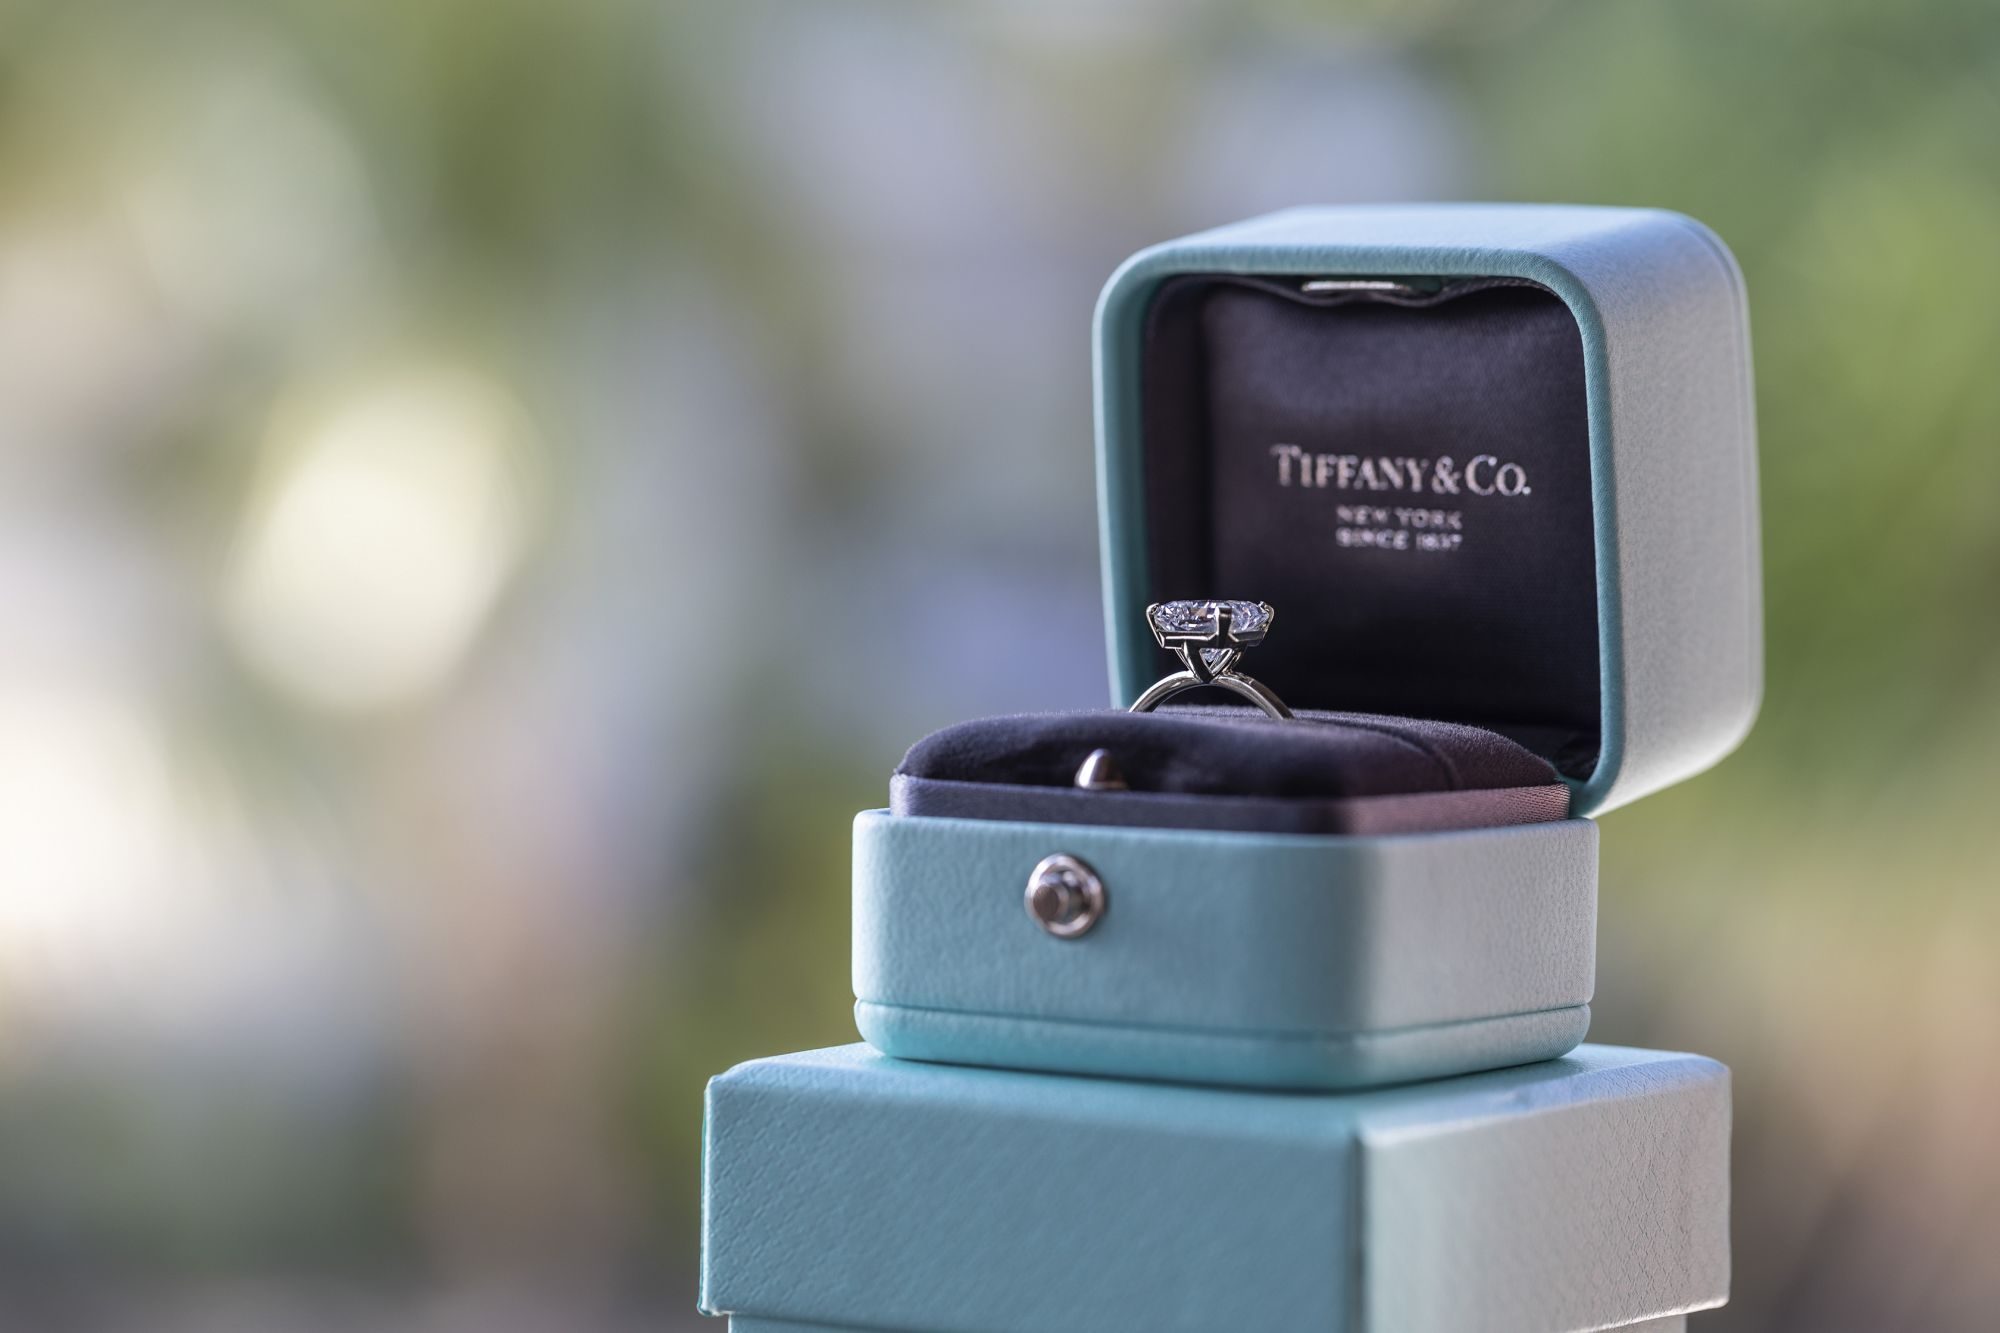 LVMH Announces That It Will No Longer Acquire Tiffany & Co in US$16 Billion Deal